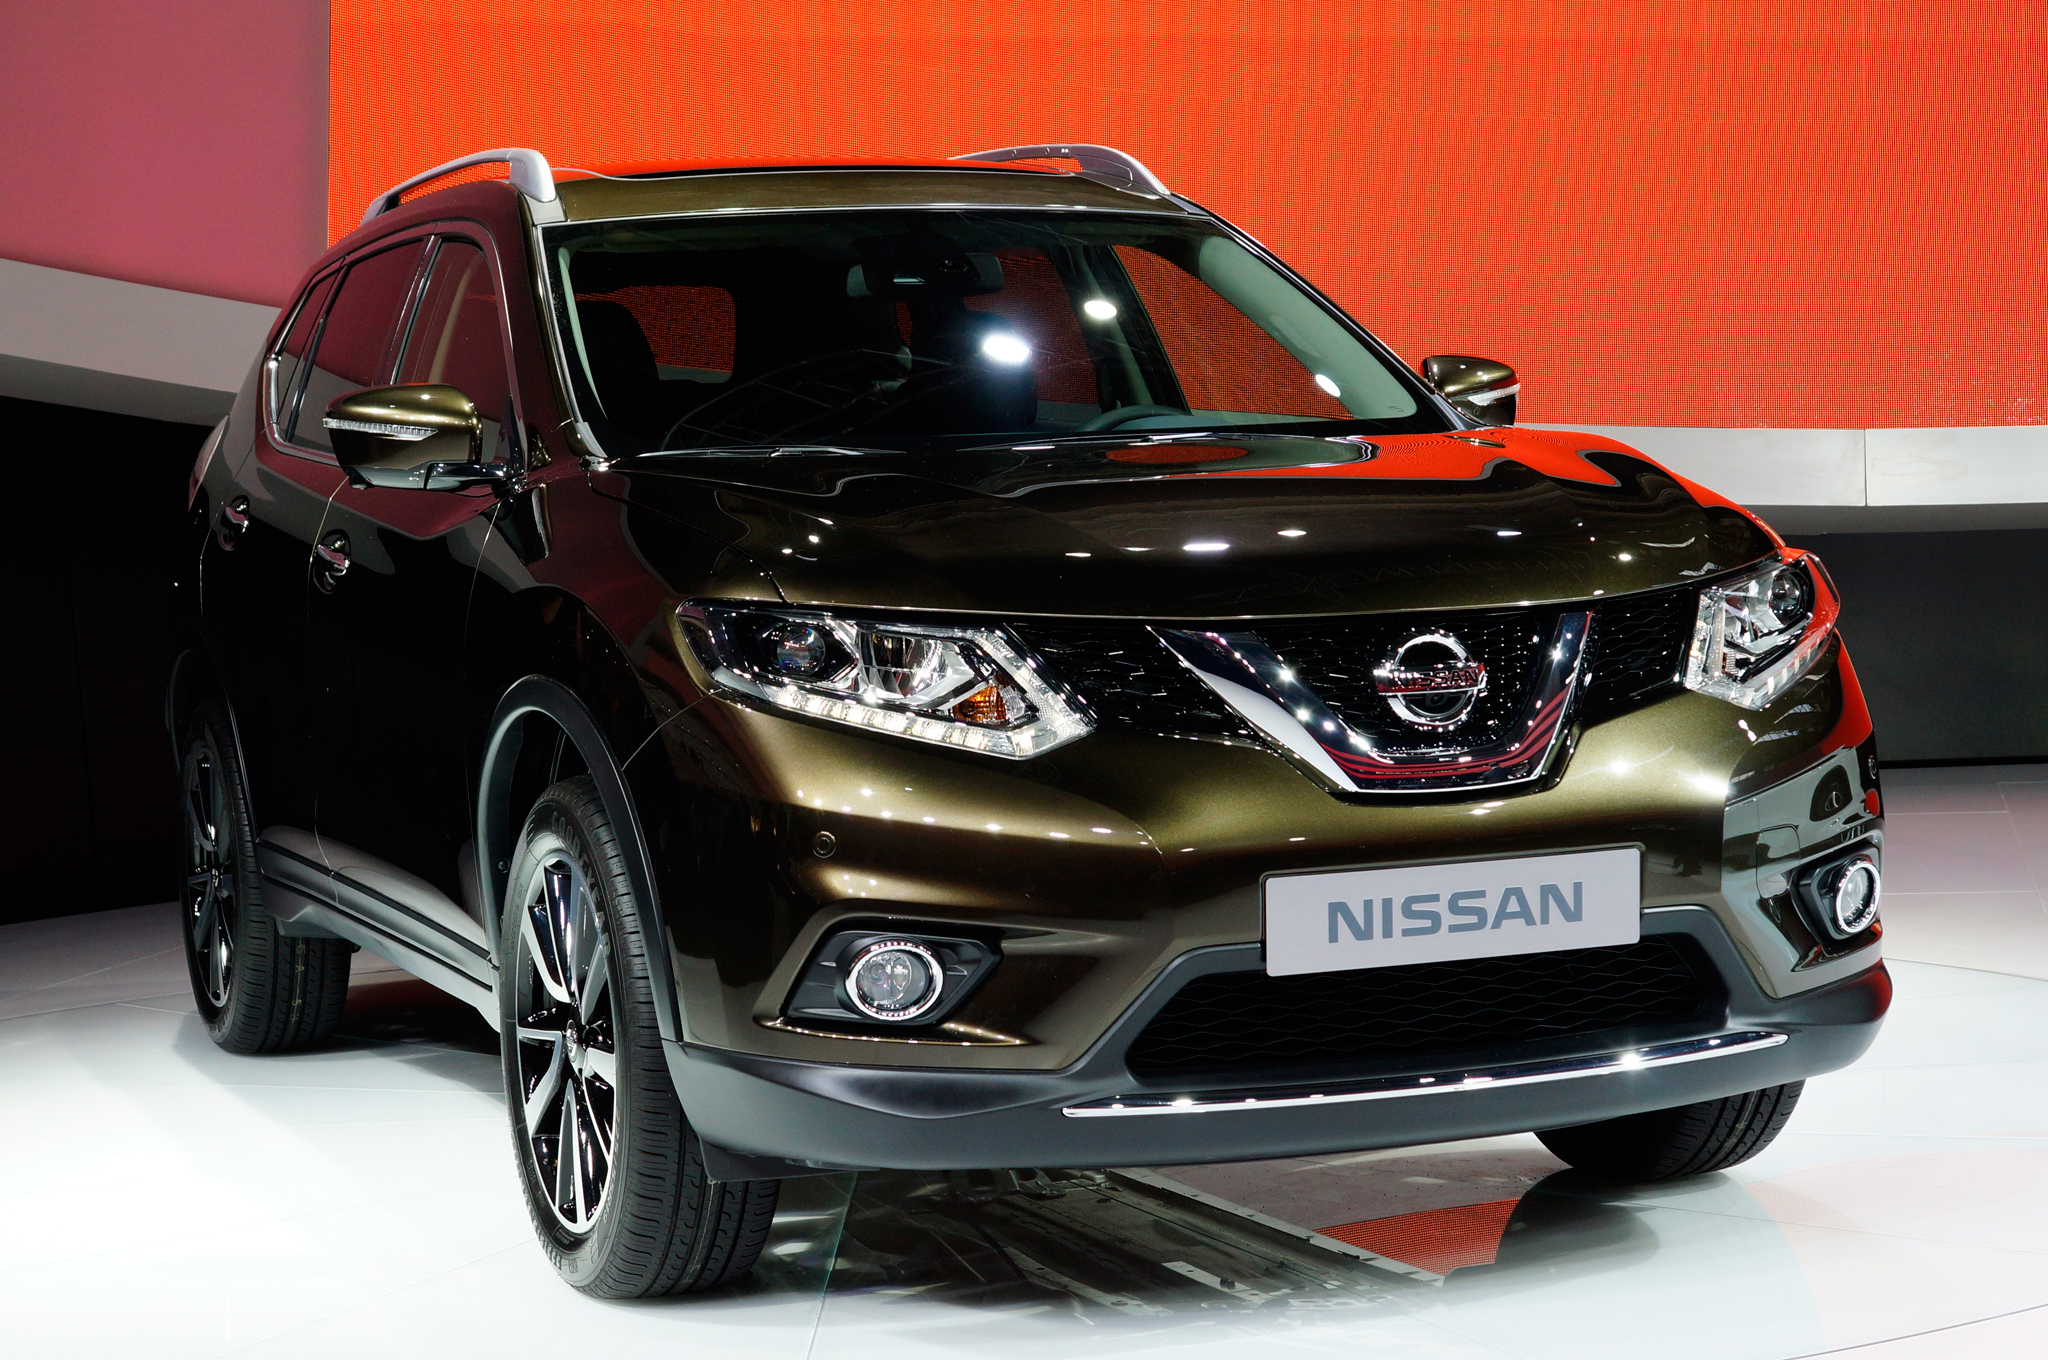 2014 Nissan Rogue To Offer Third Row Seats, Priced At $23,350